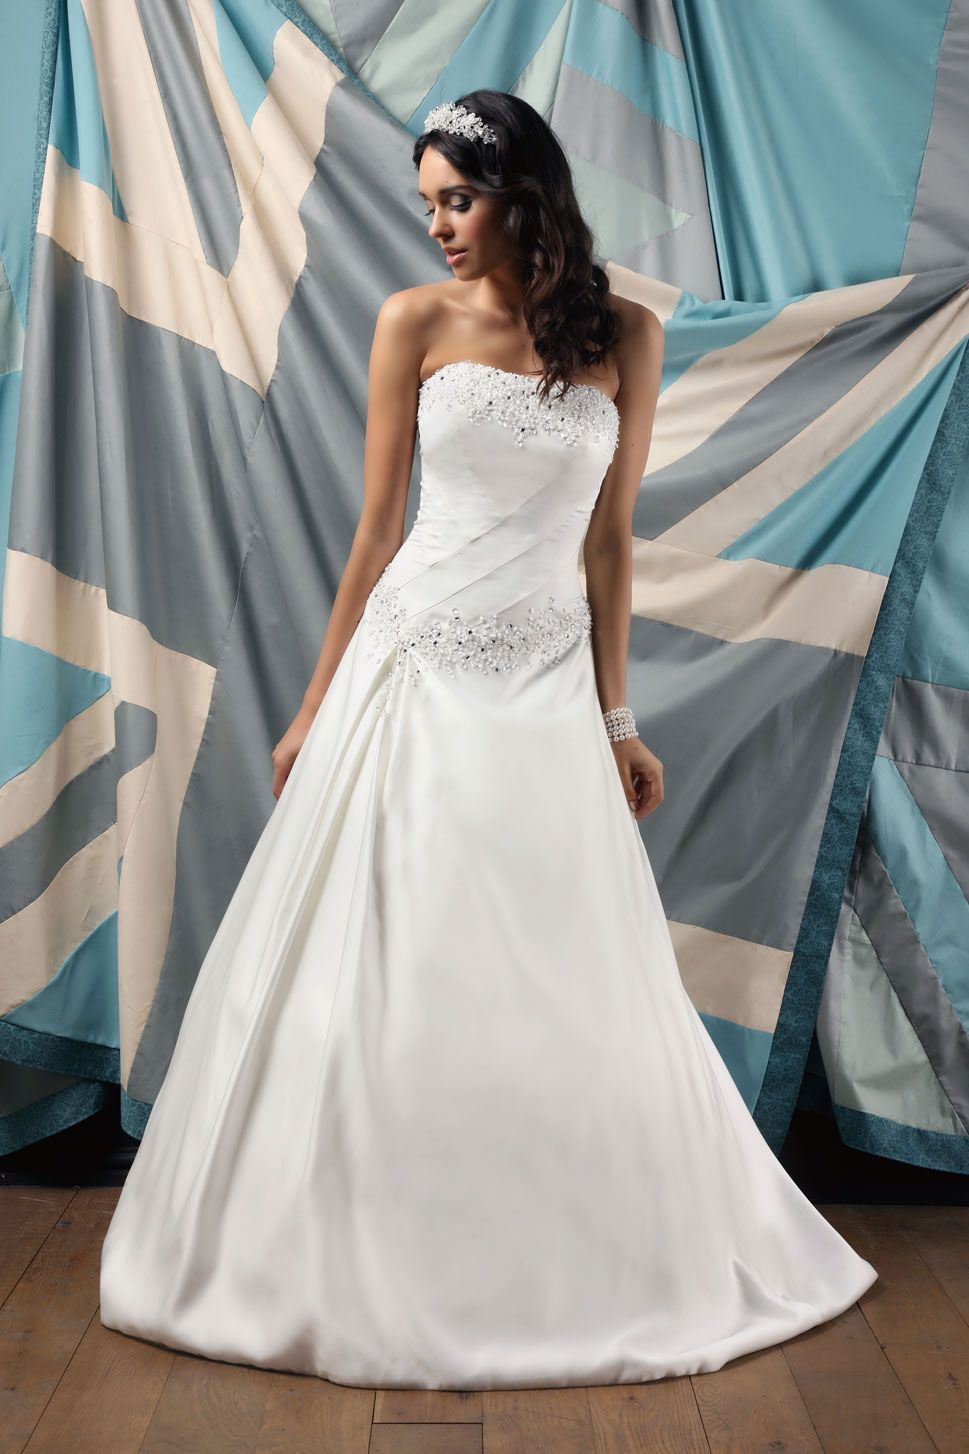 Fantastic Wedding Dress Shop Oxford Composition - Wedding Dress ...